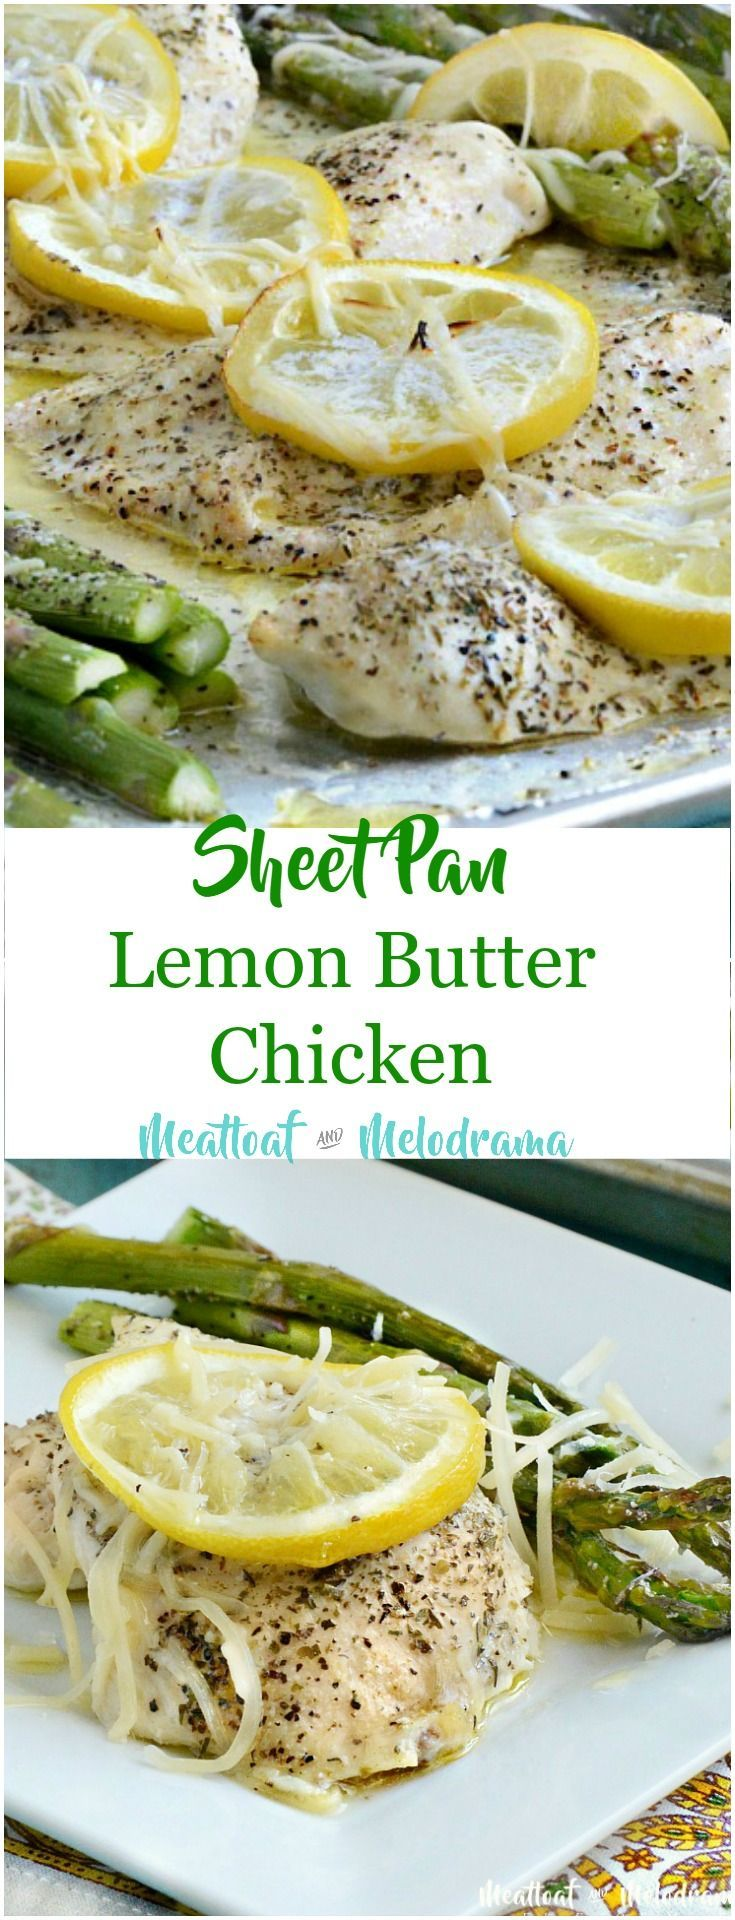 Sheet Pan Lemon Butter Chicken and Asparagus -  A light, healthy, quick and easy one dish dinner that's perfect for busy spring weeknights. Naturally gluten free and low carb and takes only 20 minutes to cook! from Meatloaf and Melodrama